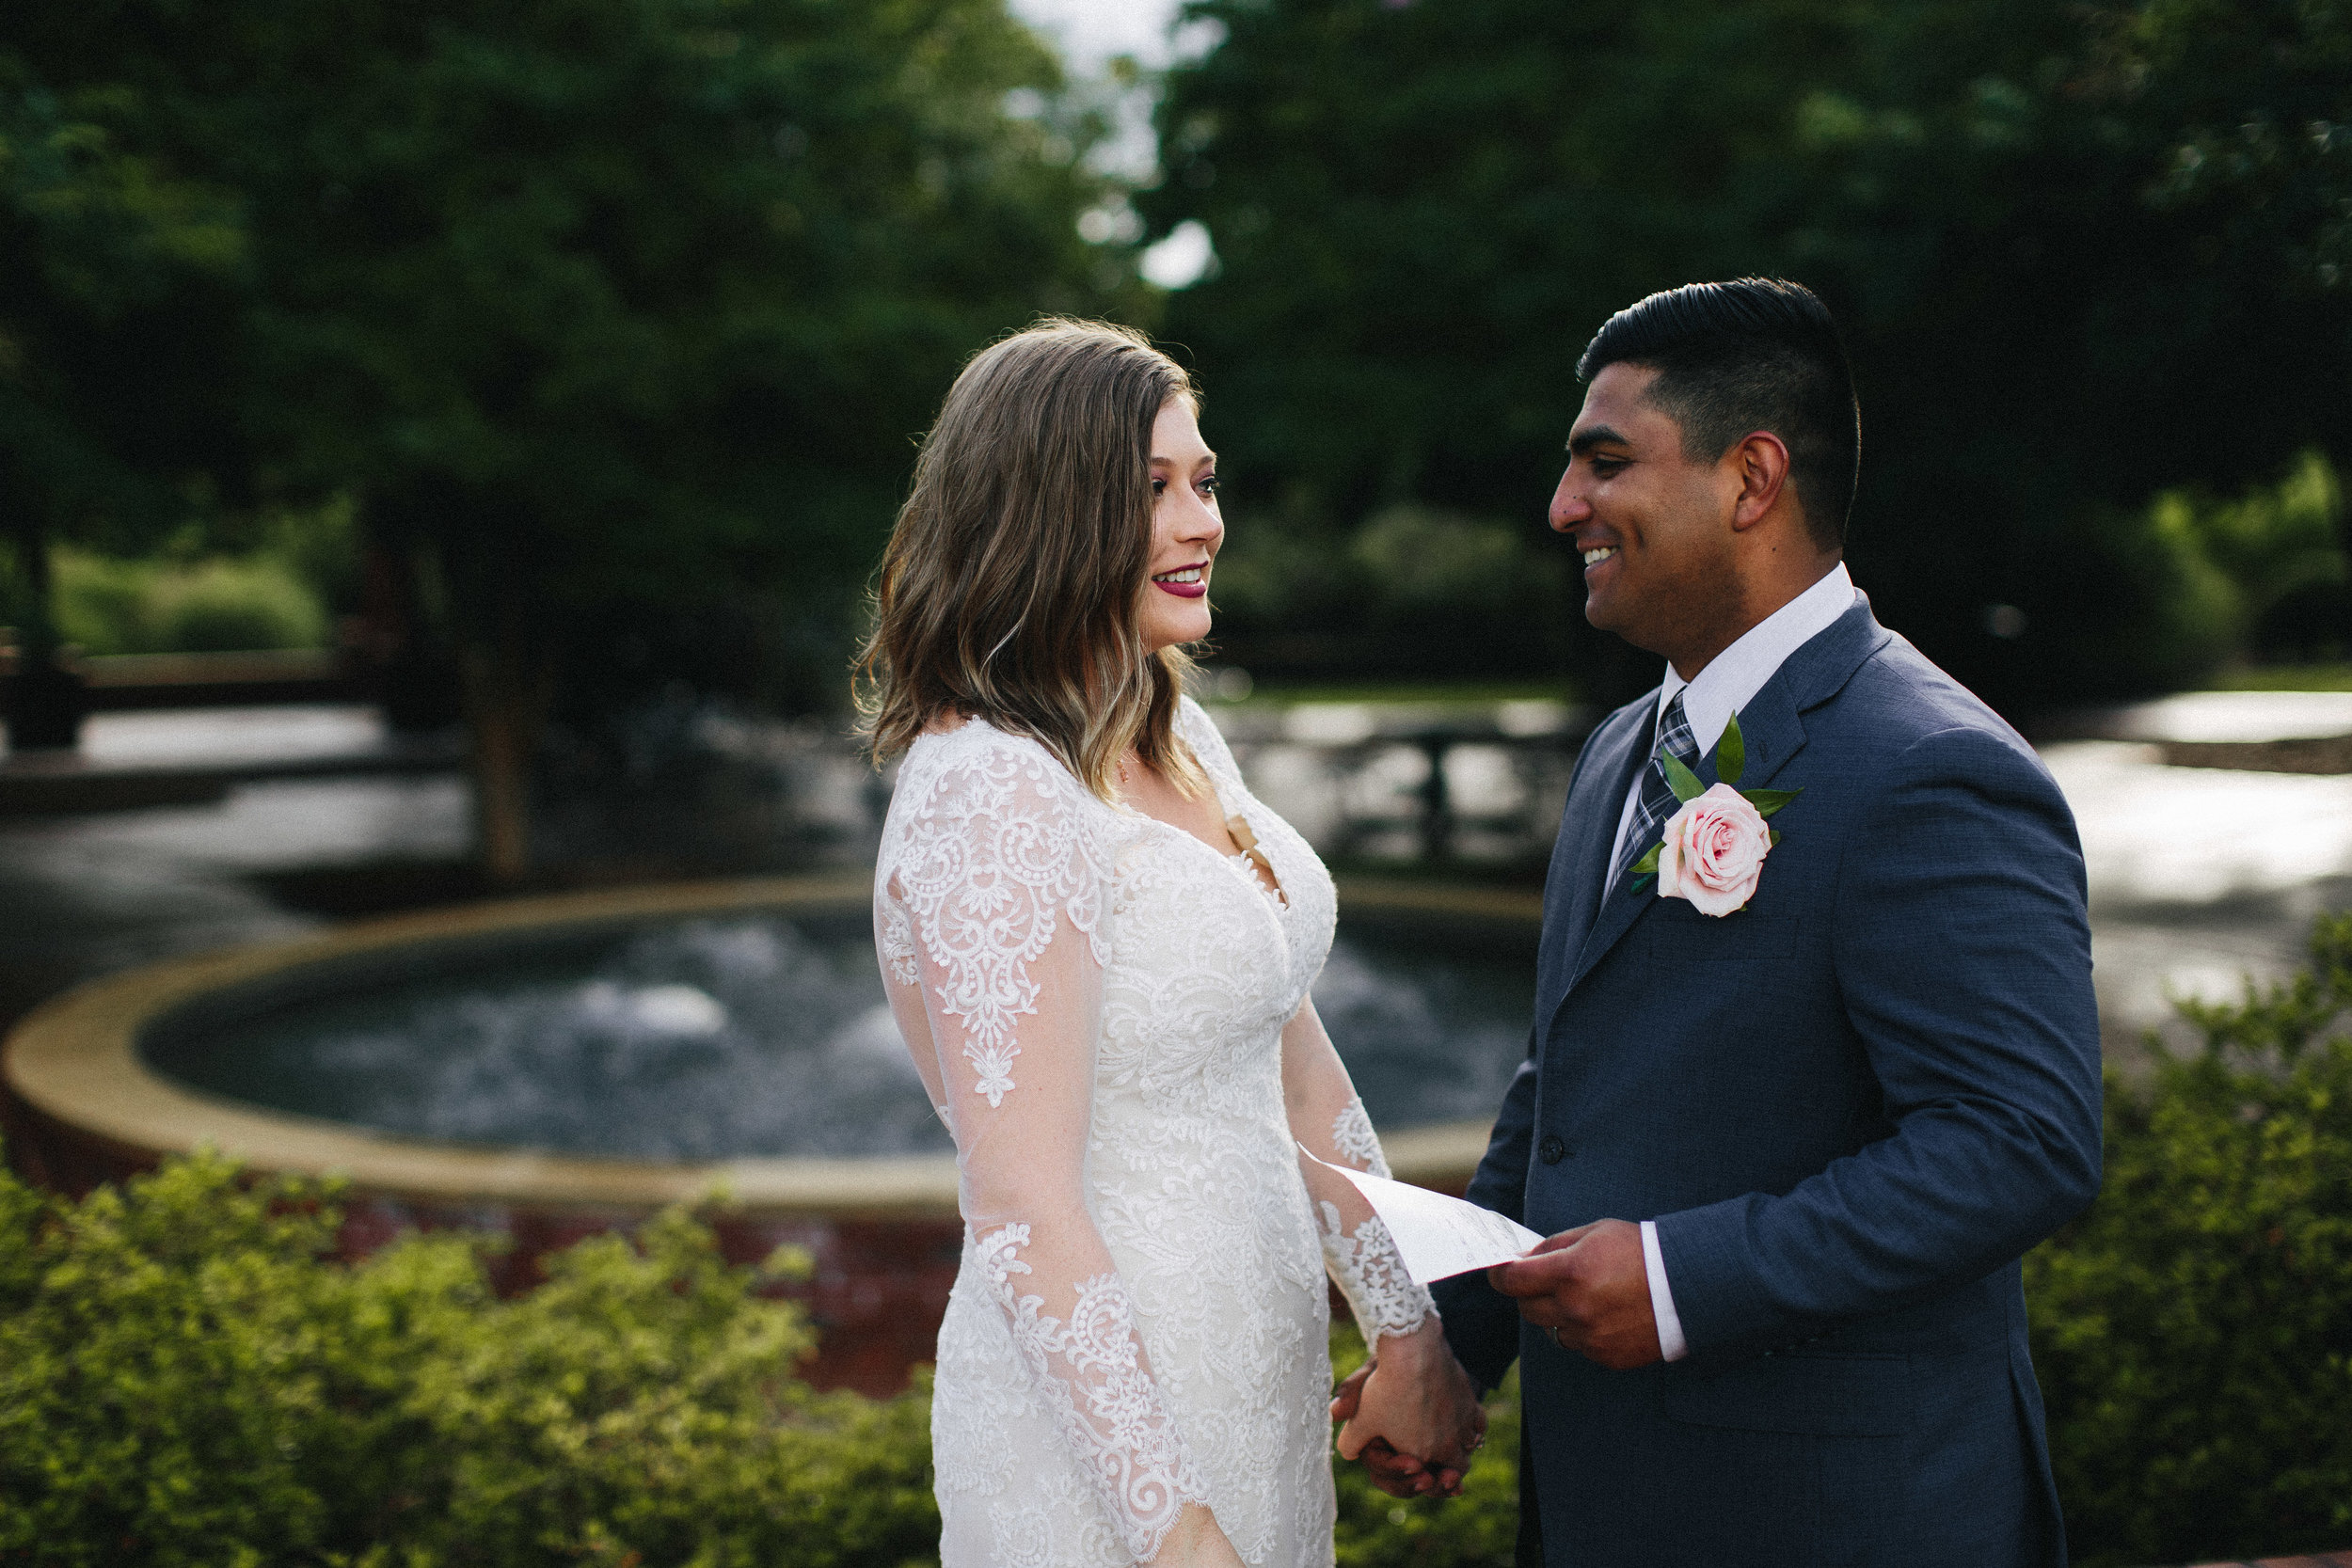 newnan_georgia_elegant_rainy_park_elopement_dogs_pups_tiny_wedding_backless_dress_blue_suit_georgia_atlanta_photographer_1357.jpg